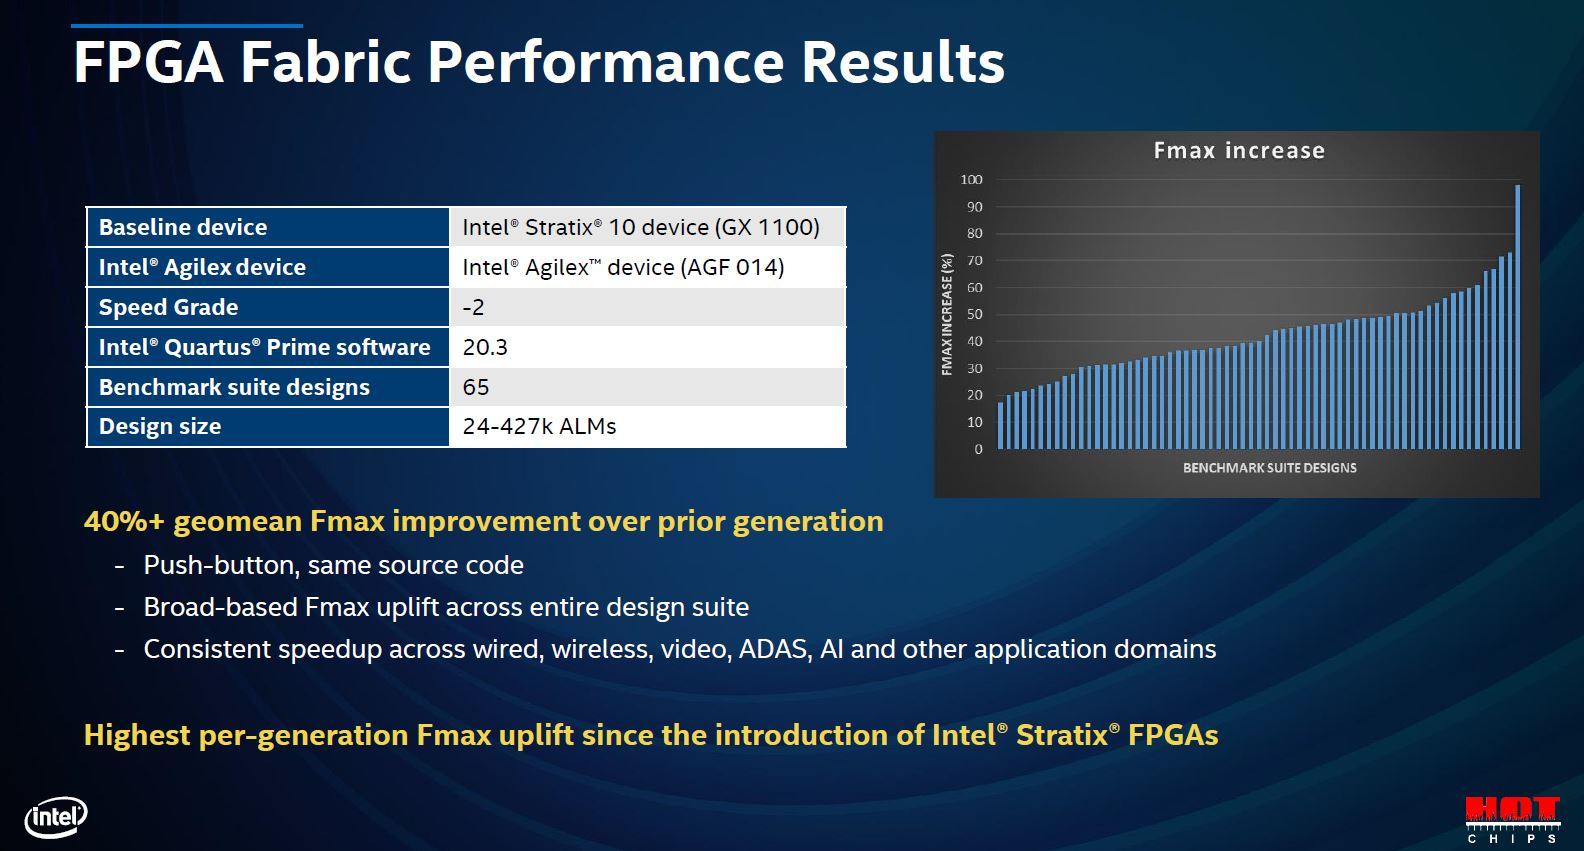 Hot Chips 32 Intel Agilex Core Fabric Performance